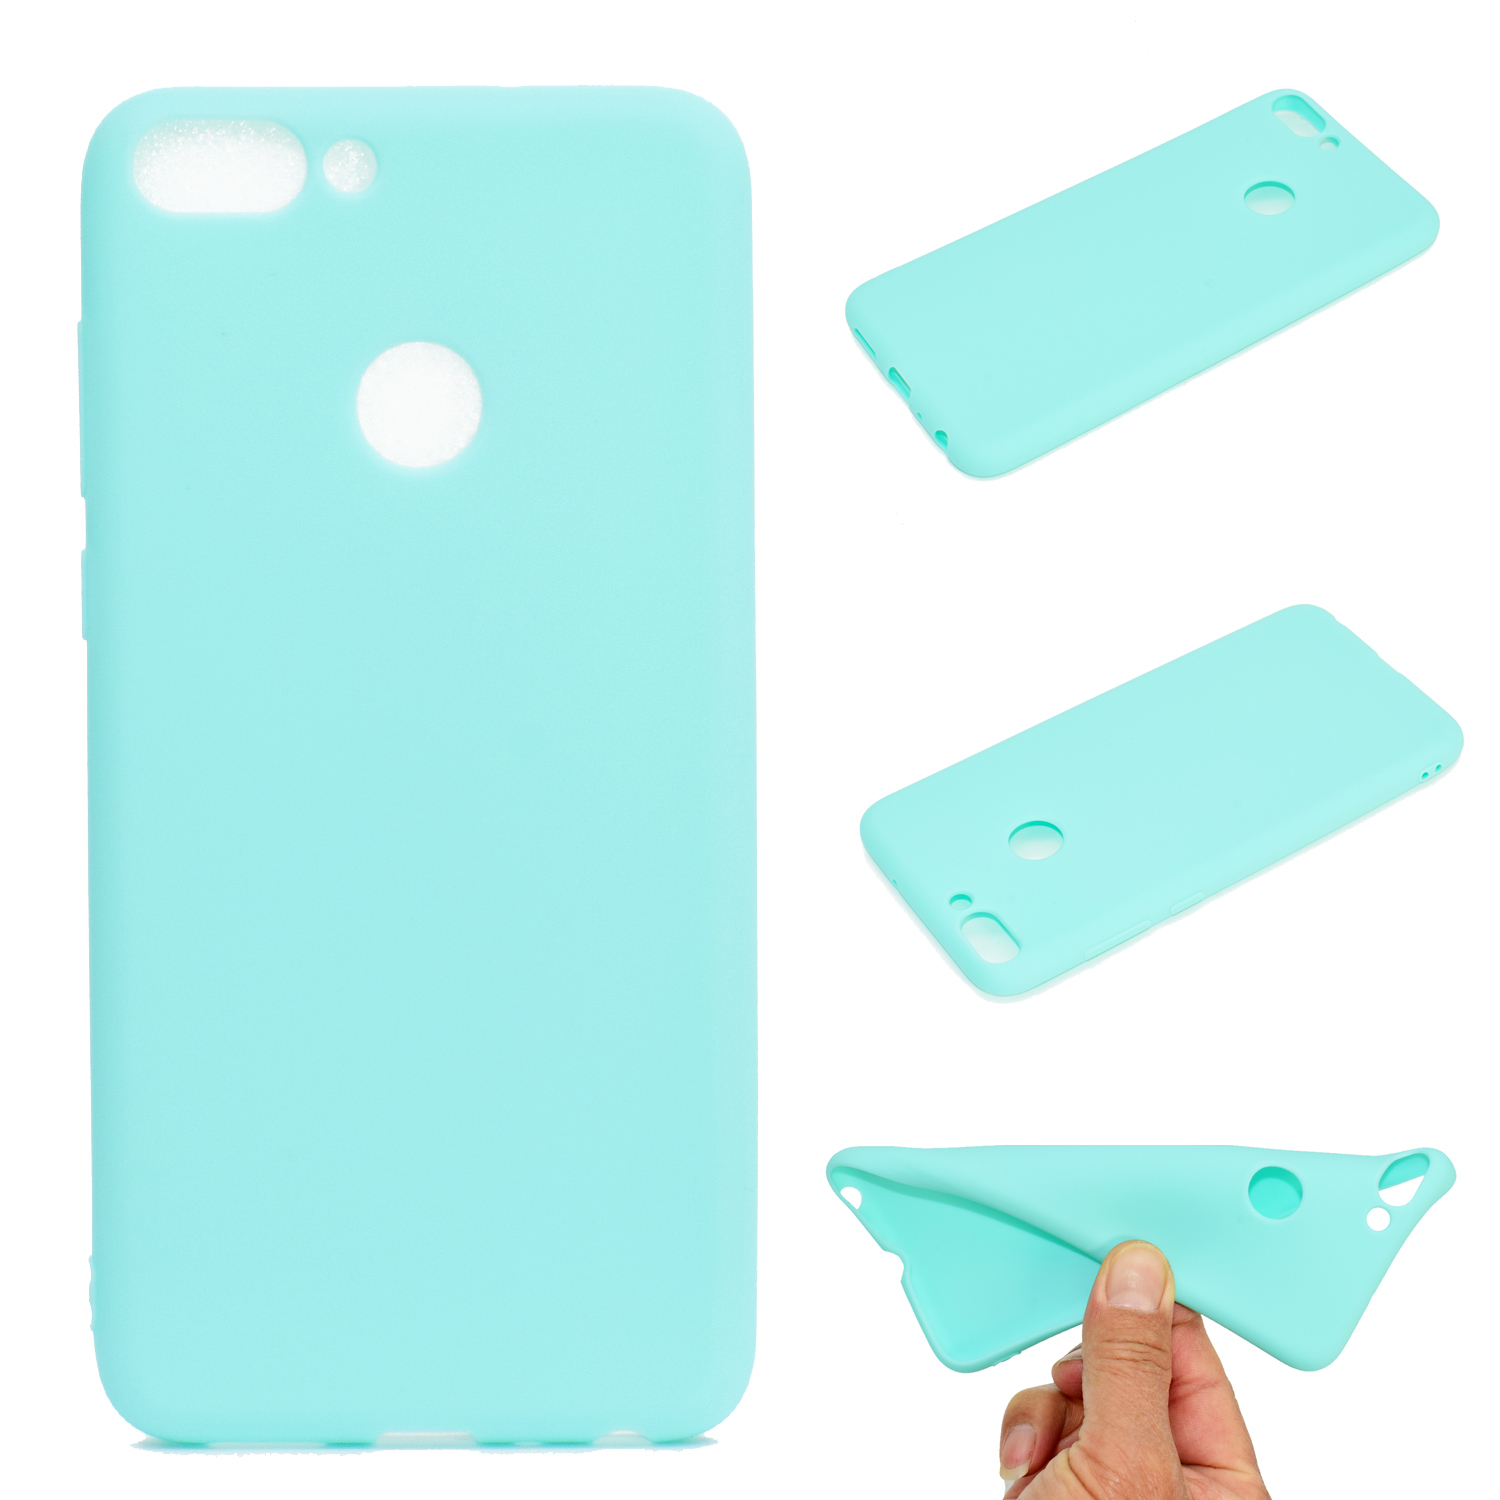 for HUAWEI Honor 9 lite Cute Candy Color Matte TPU Anti-scratch Non-slip Protective Cover Back Case Light blue